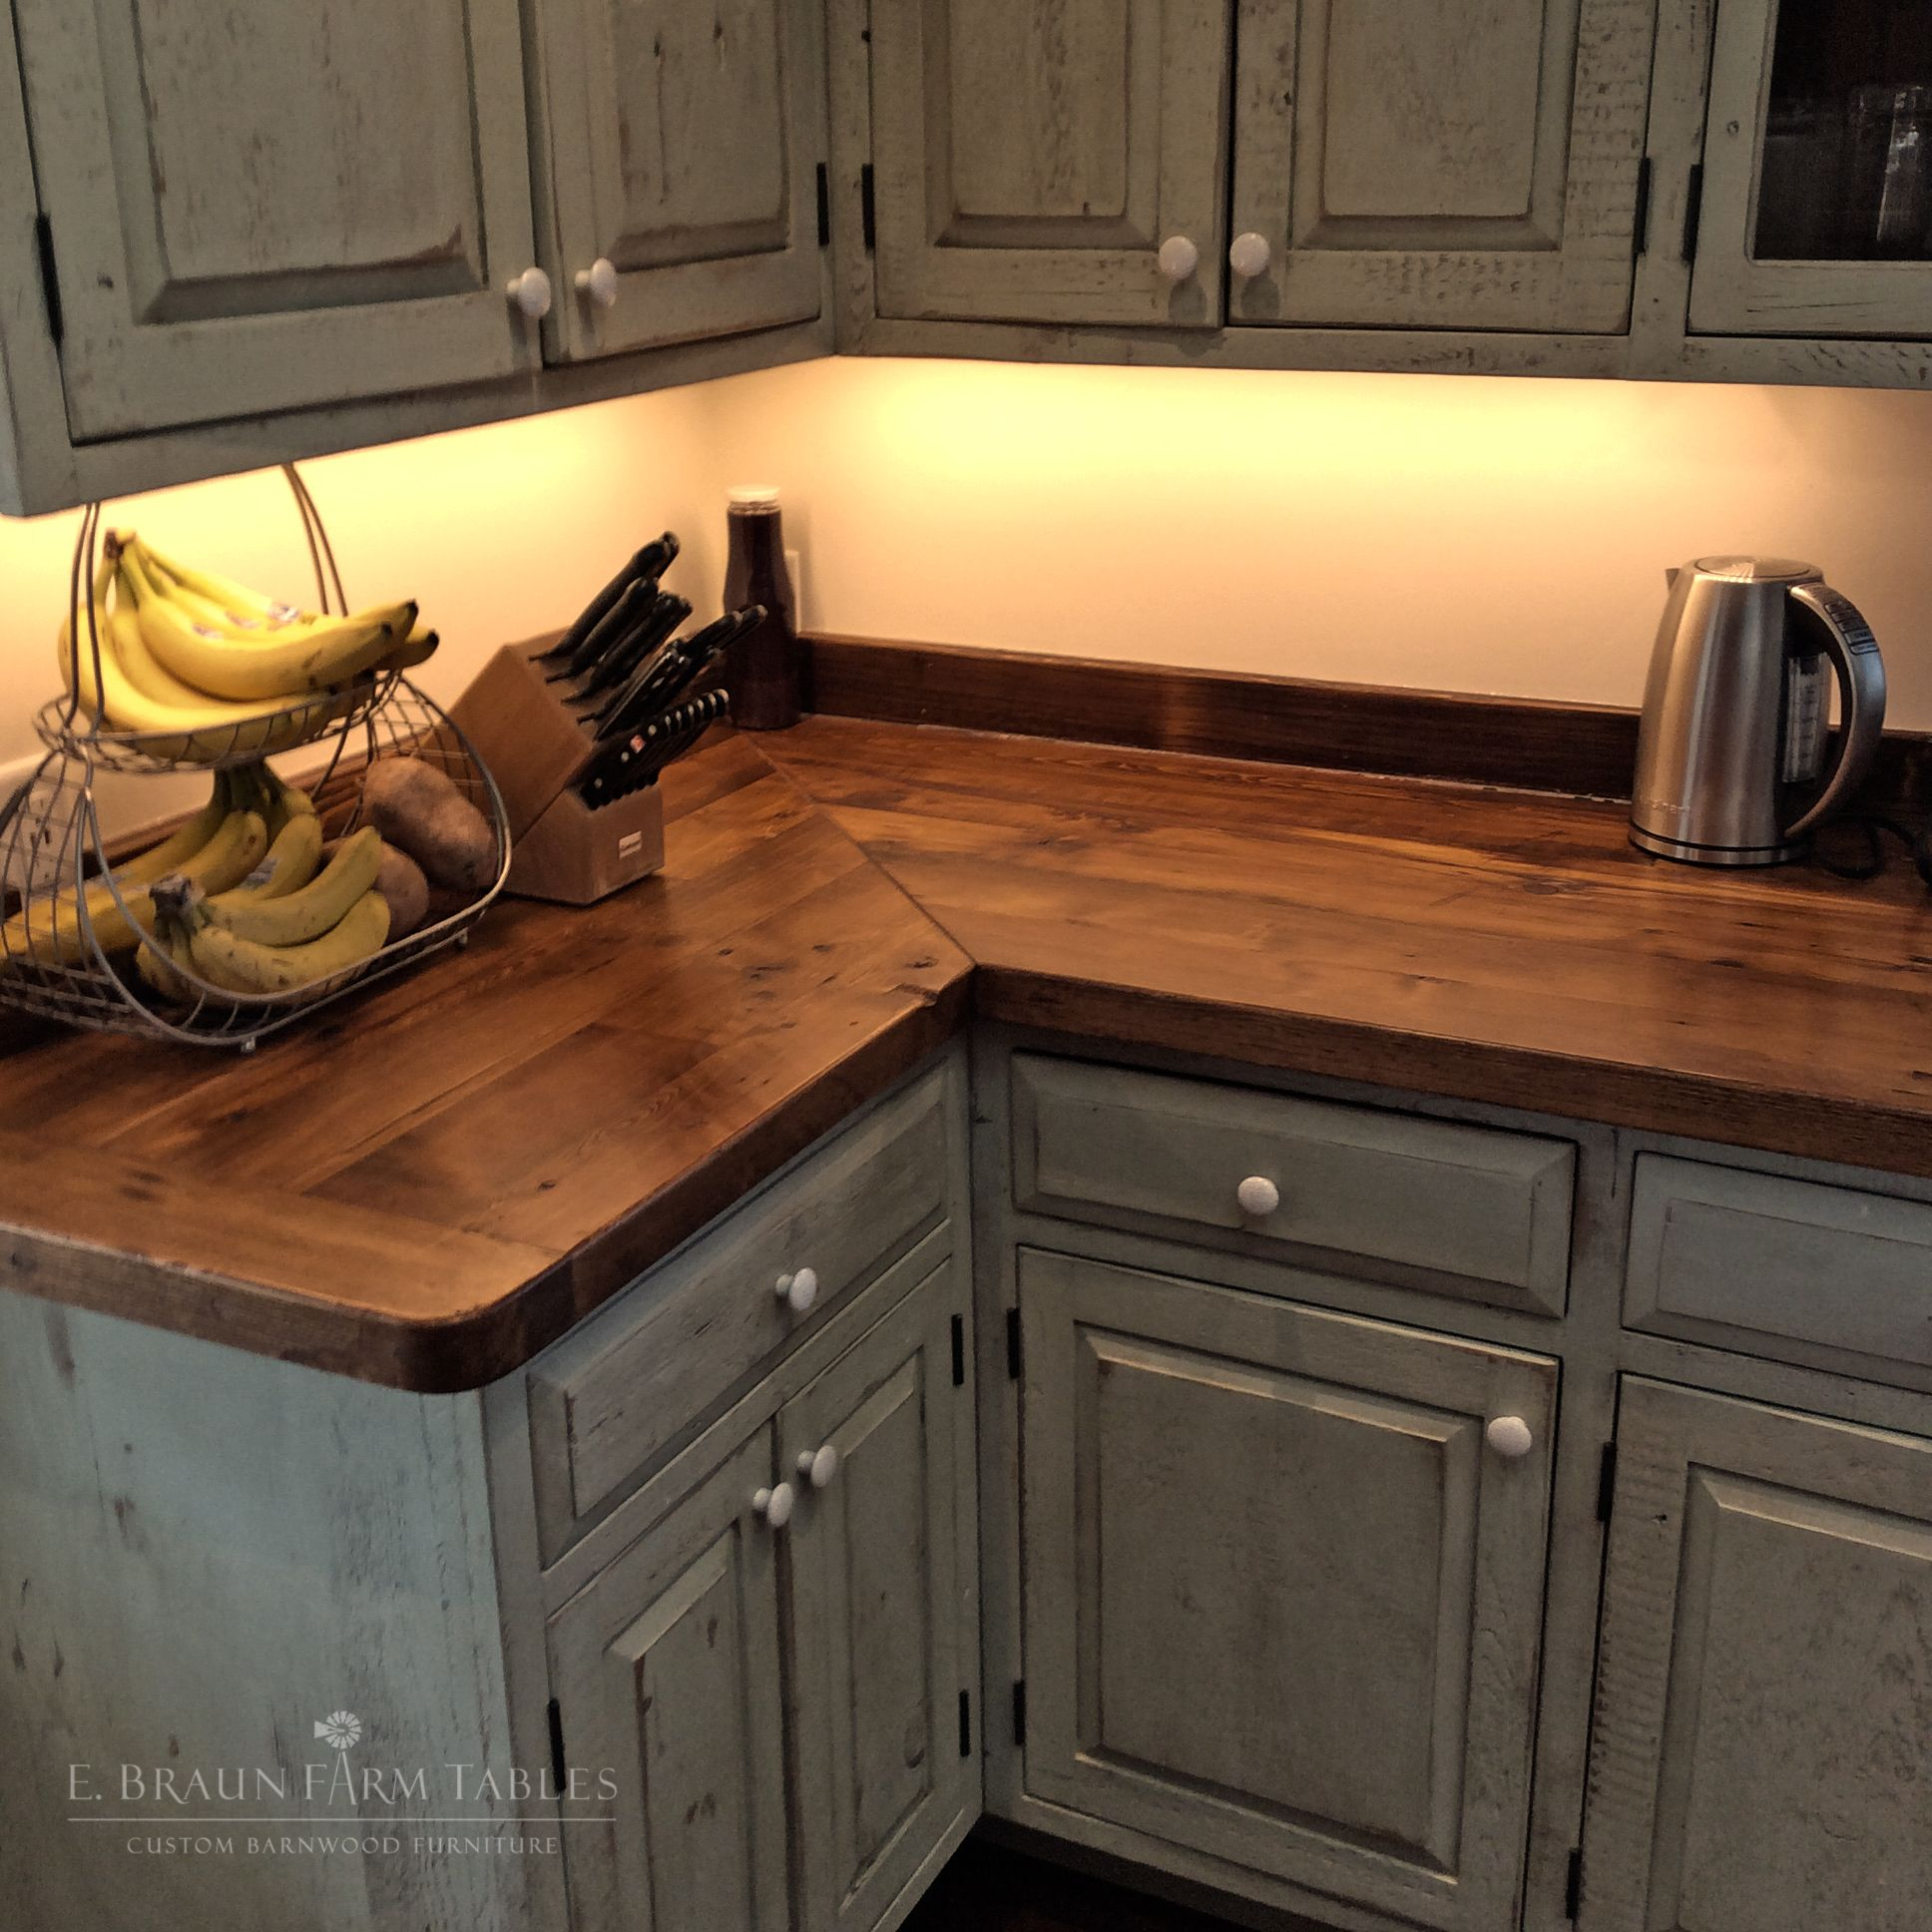 Reclaimed Barn Wood From Dismantled Barns And Farm Structures Dating From The 1800 S To Early 1900 Wood Countertops Kitchen Kitchen Table Wood Kitchen Remodel